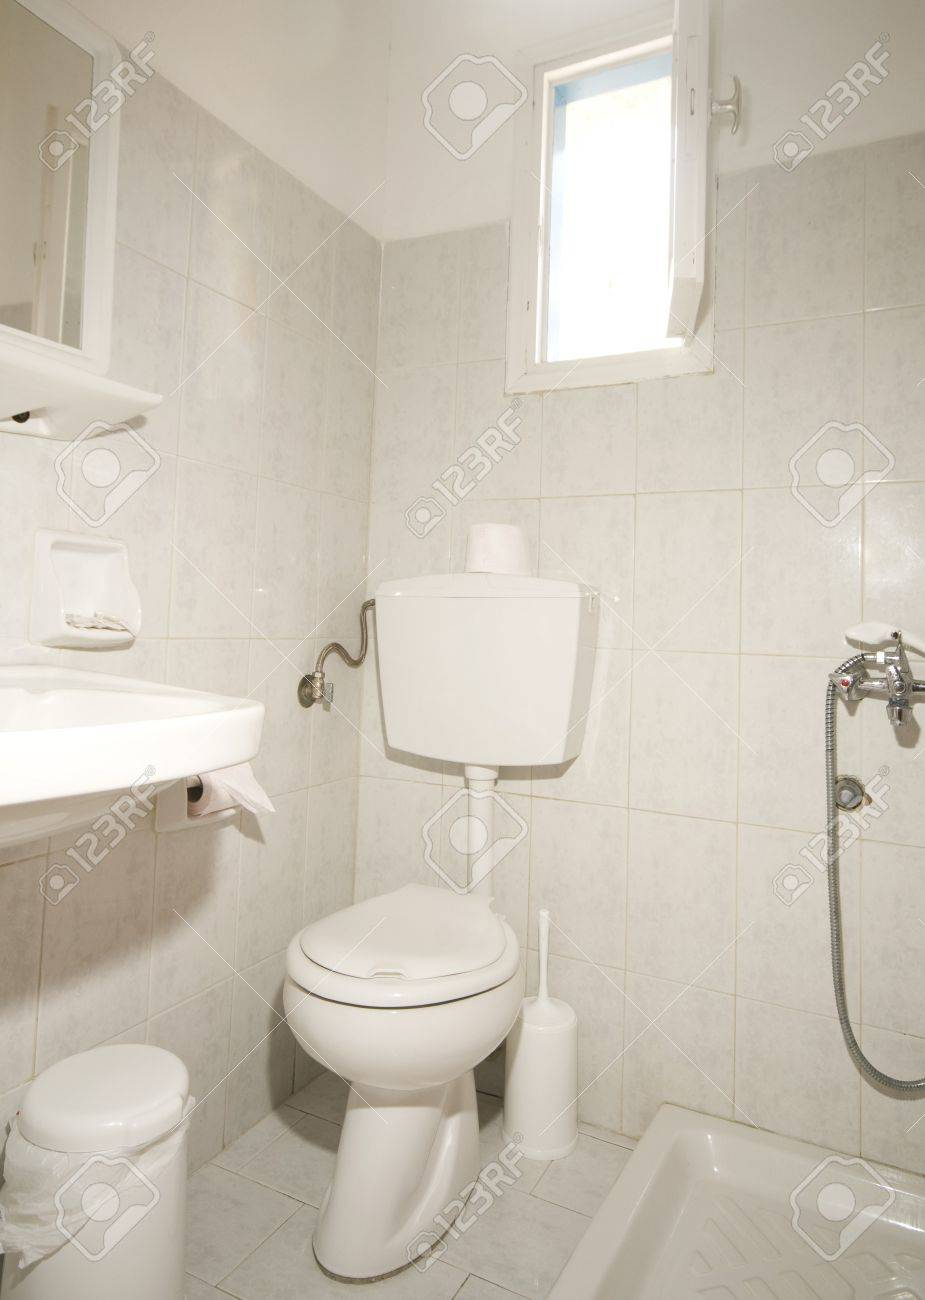 All In One Bathroom Typical Compact All In One Bathroom With No Shower Curtain And